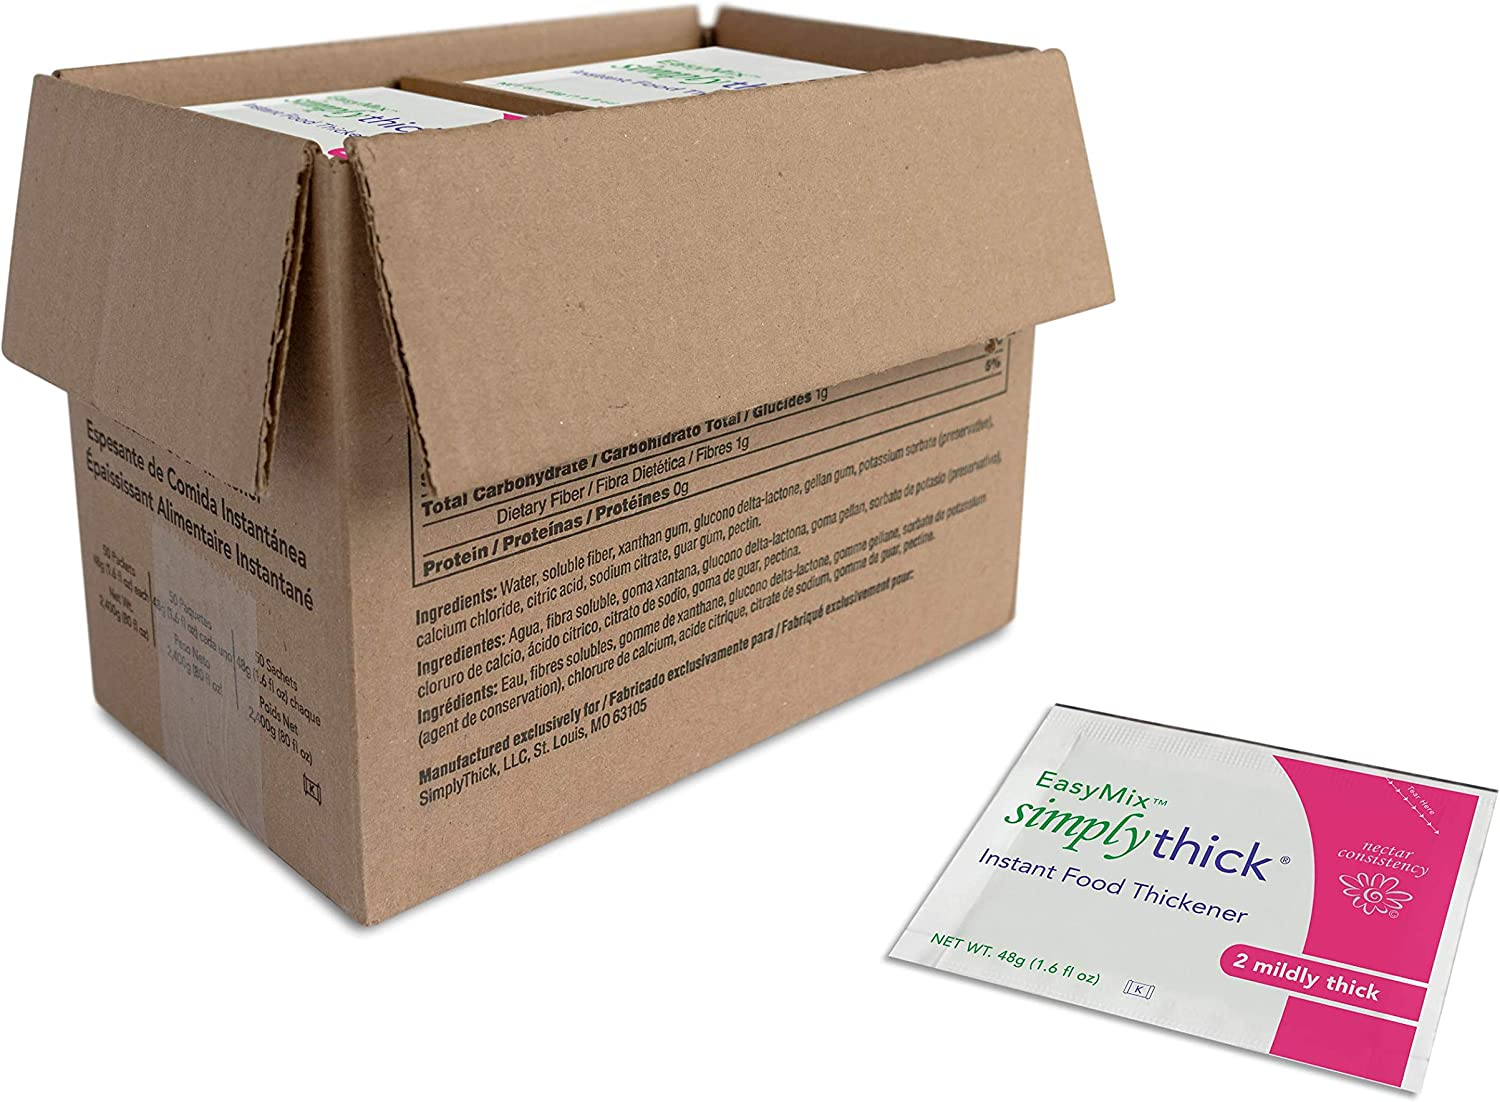 SimplyThick Easy Mix 50 Count of 48g Individual Packet Gel Thickener | for Dysphagia & Swallowing Difficulties | Add One Packet for Every 32oz of Liquid | Creates A Mildly Thick (Nectar) Consistency